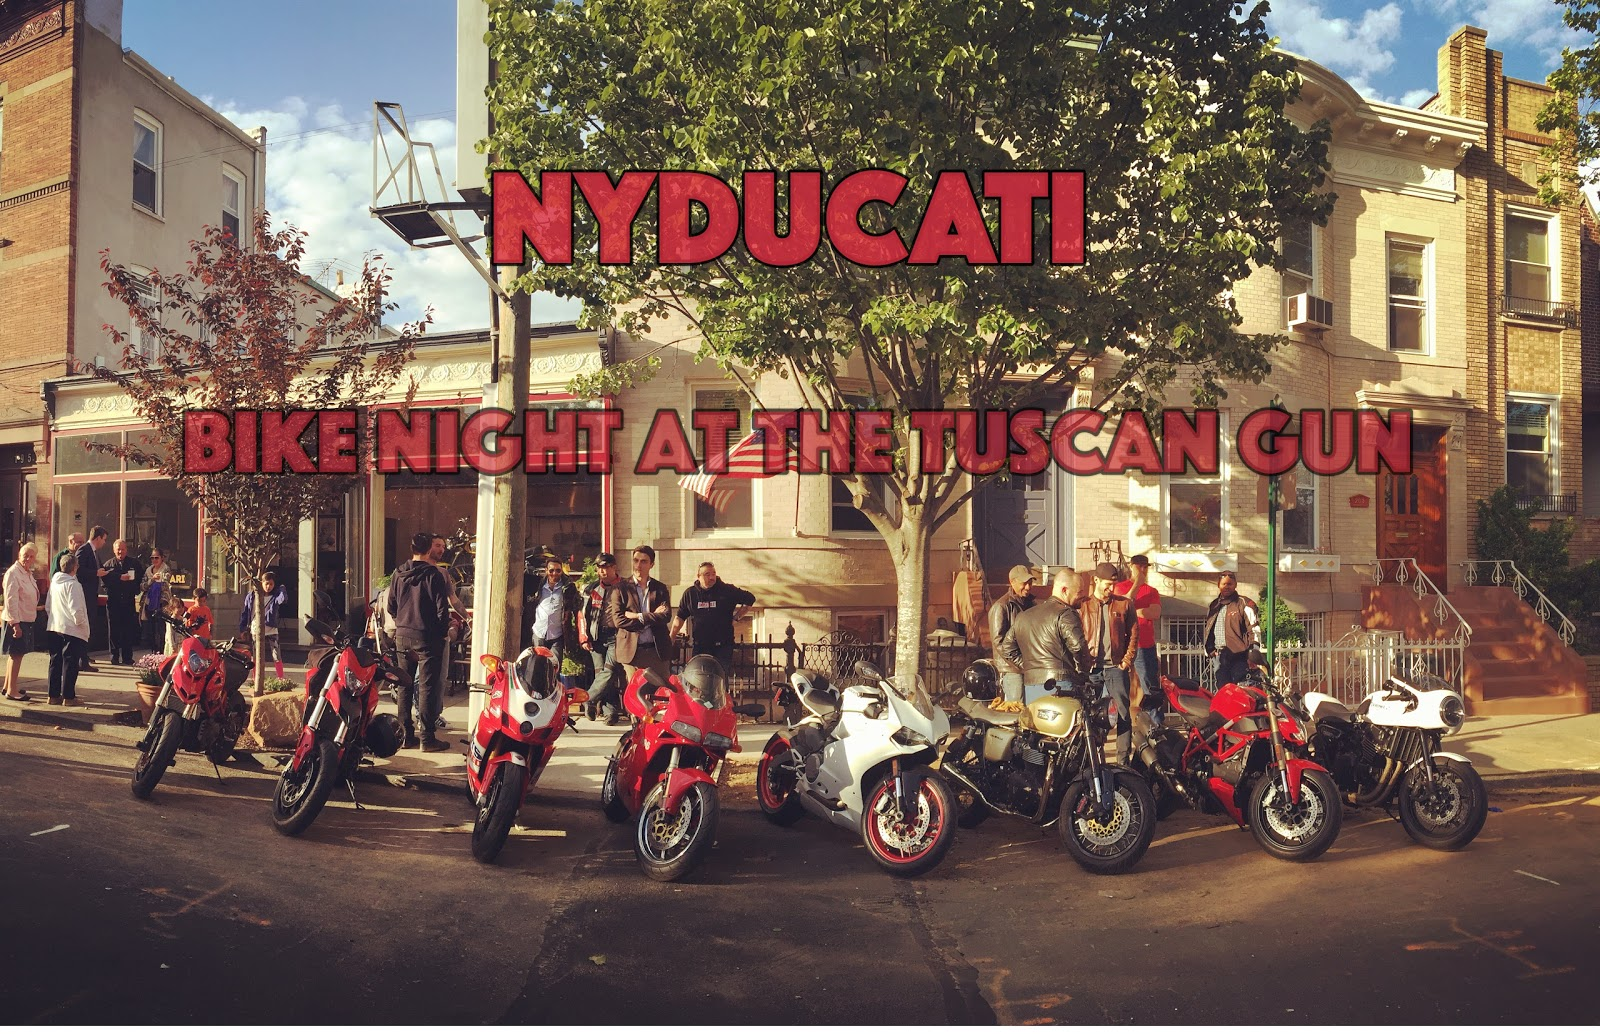 NYDUCATI: Bike Night at The Tuscan Gun in Brooklyn